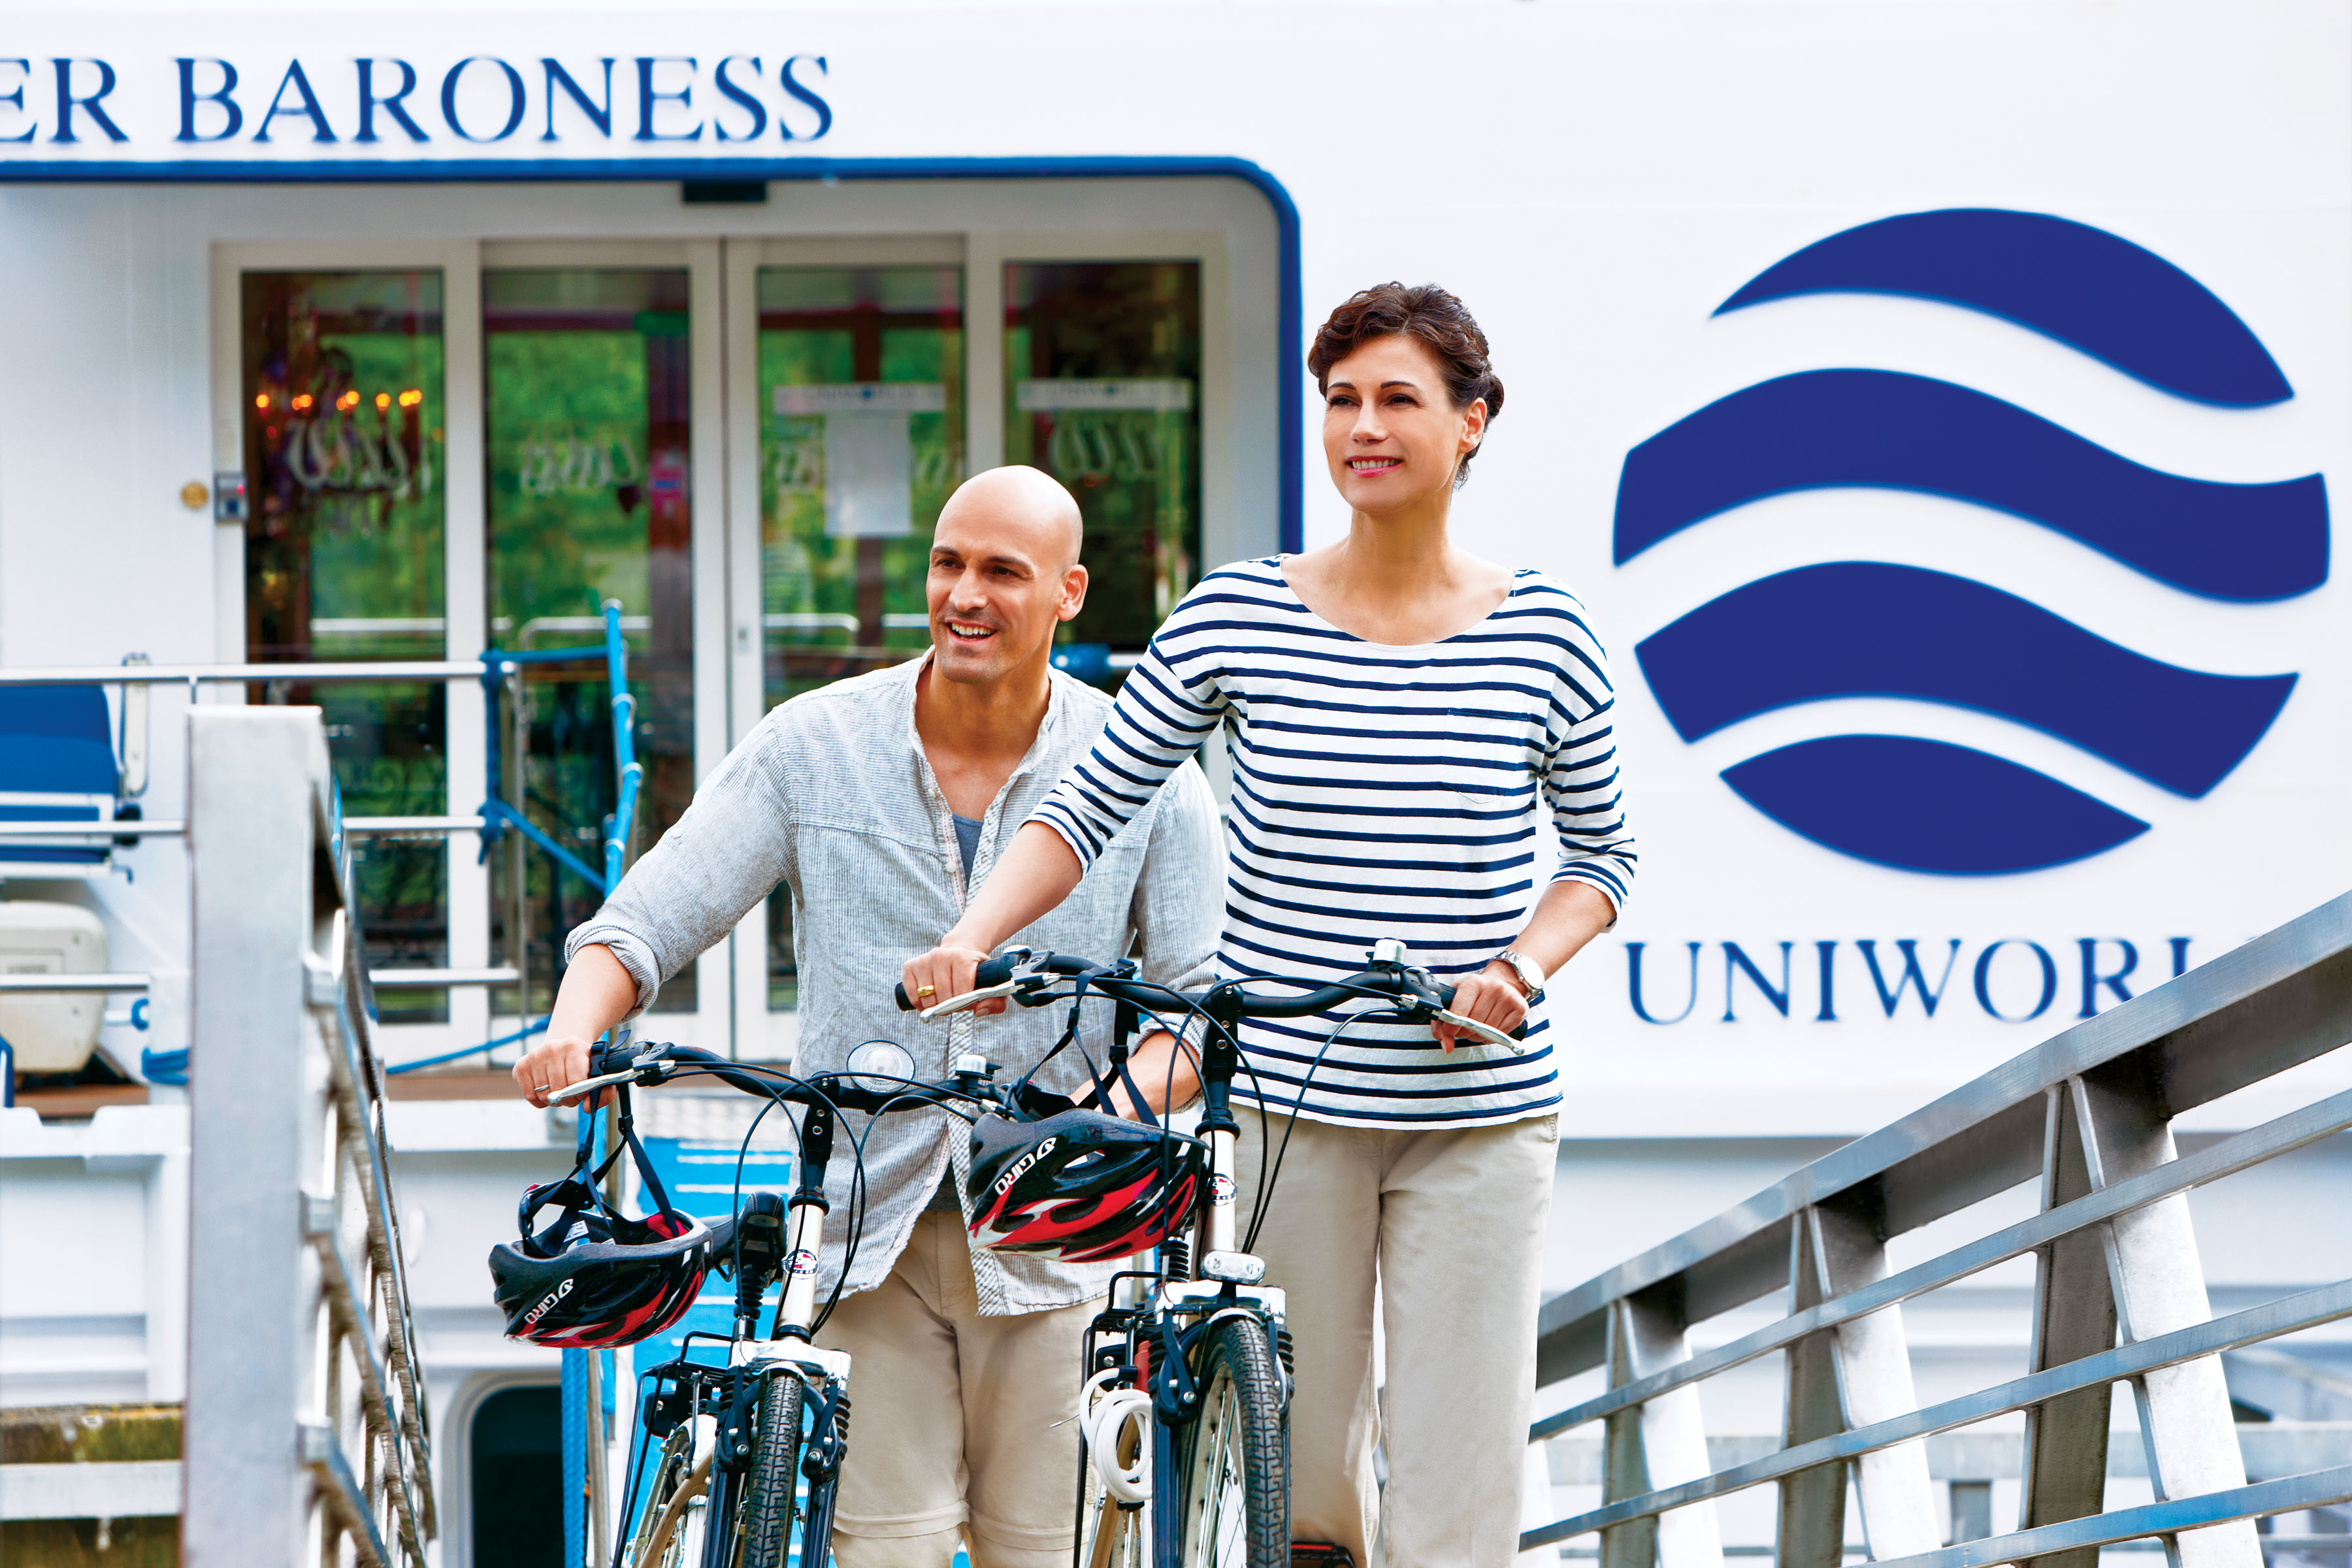 UNIWORLD Boutique River Cruises River Baroness Exterior Bicycles.jpg